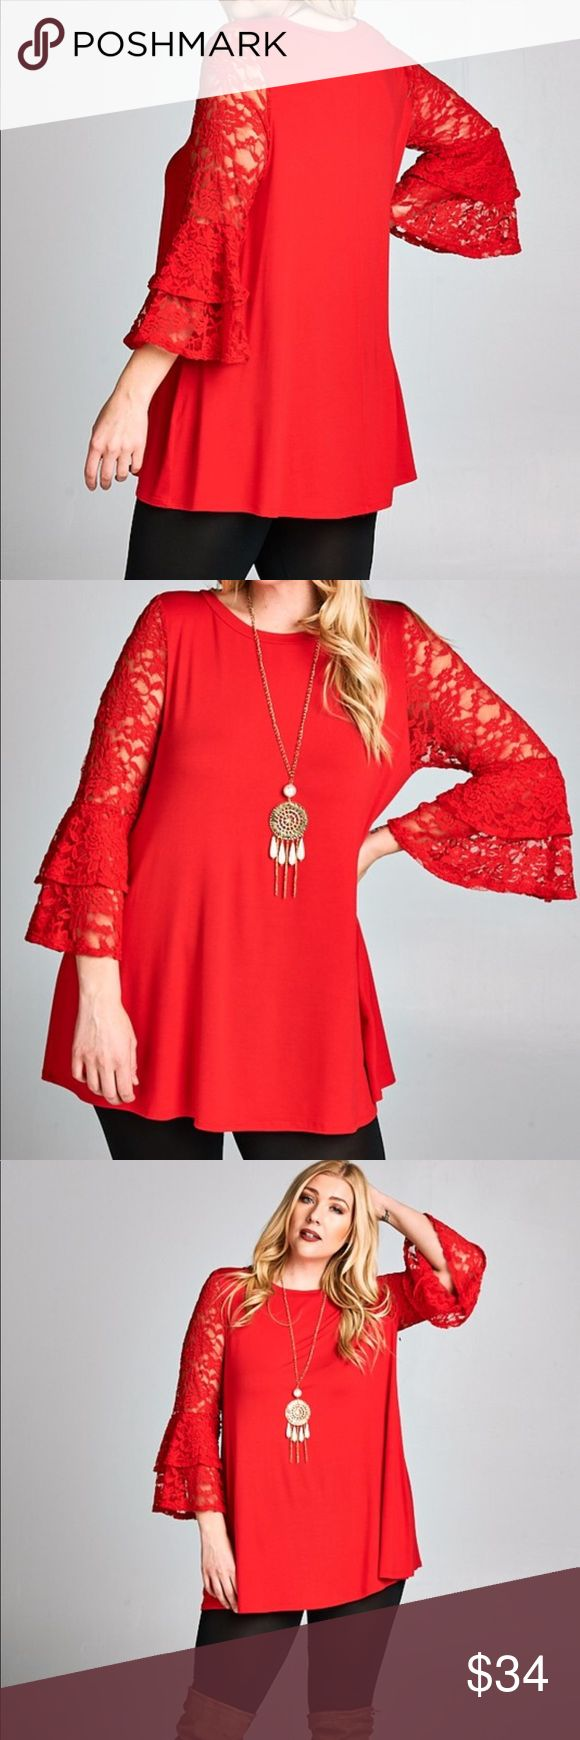 PLUS SIZE Red Two tiered bell lace sleeve tunic. Gorgeous red tunic with lace two tiered bell sleeves.  Body portion is soft material.   Super comfy and flattering. Tops Tunics